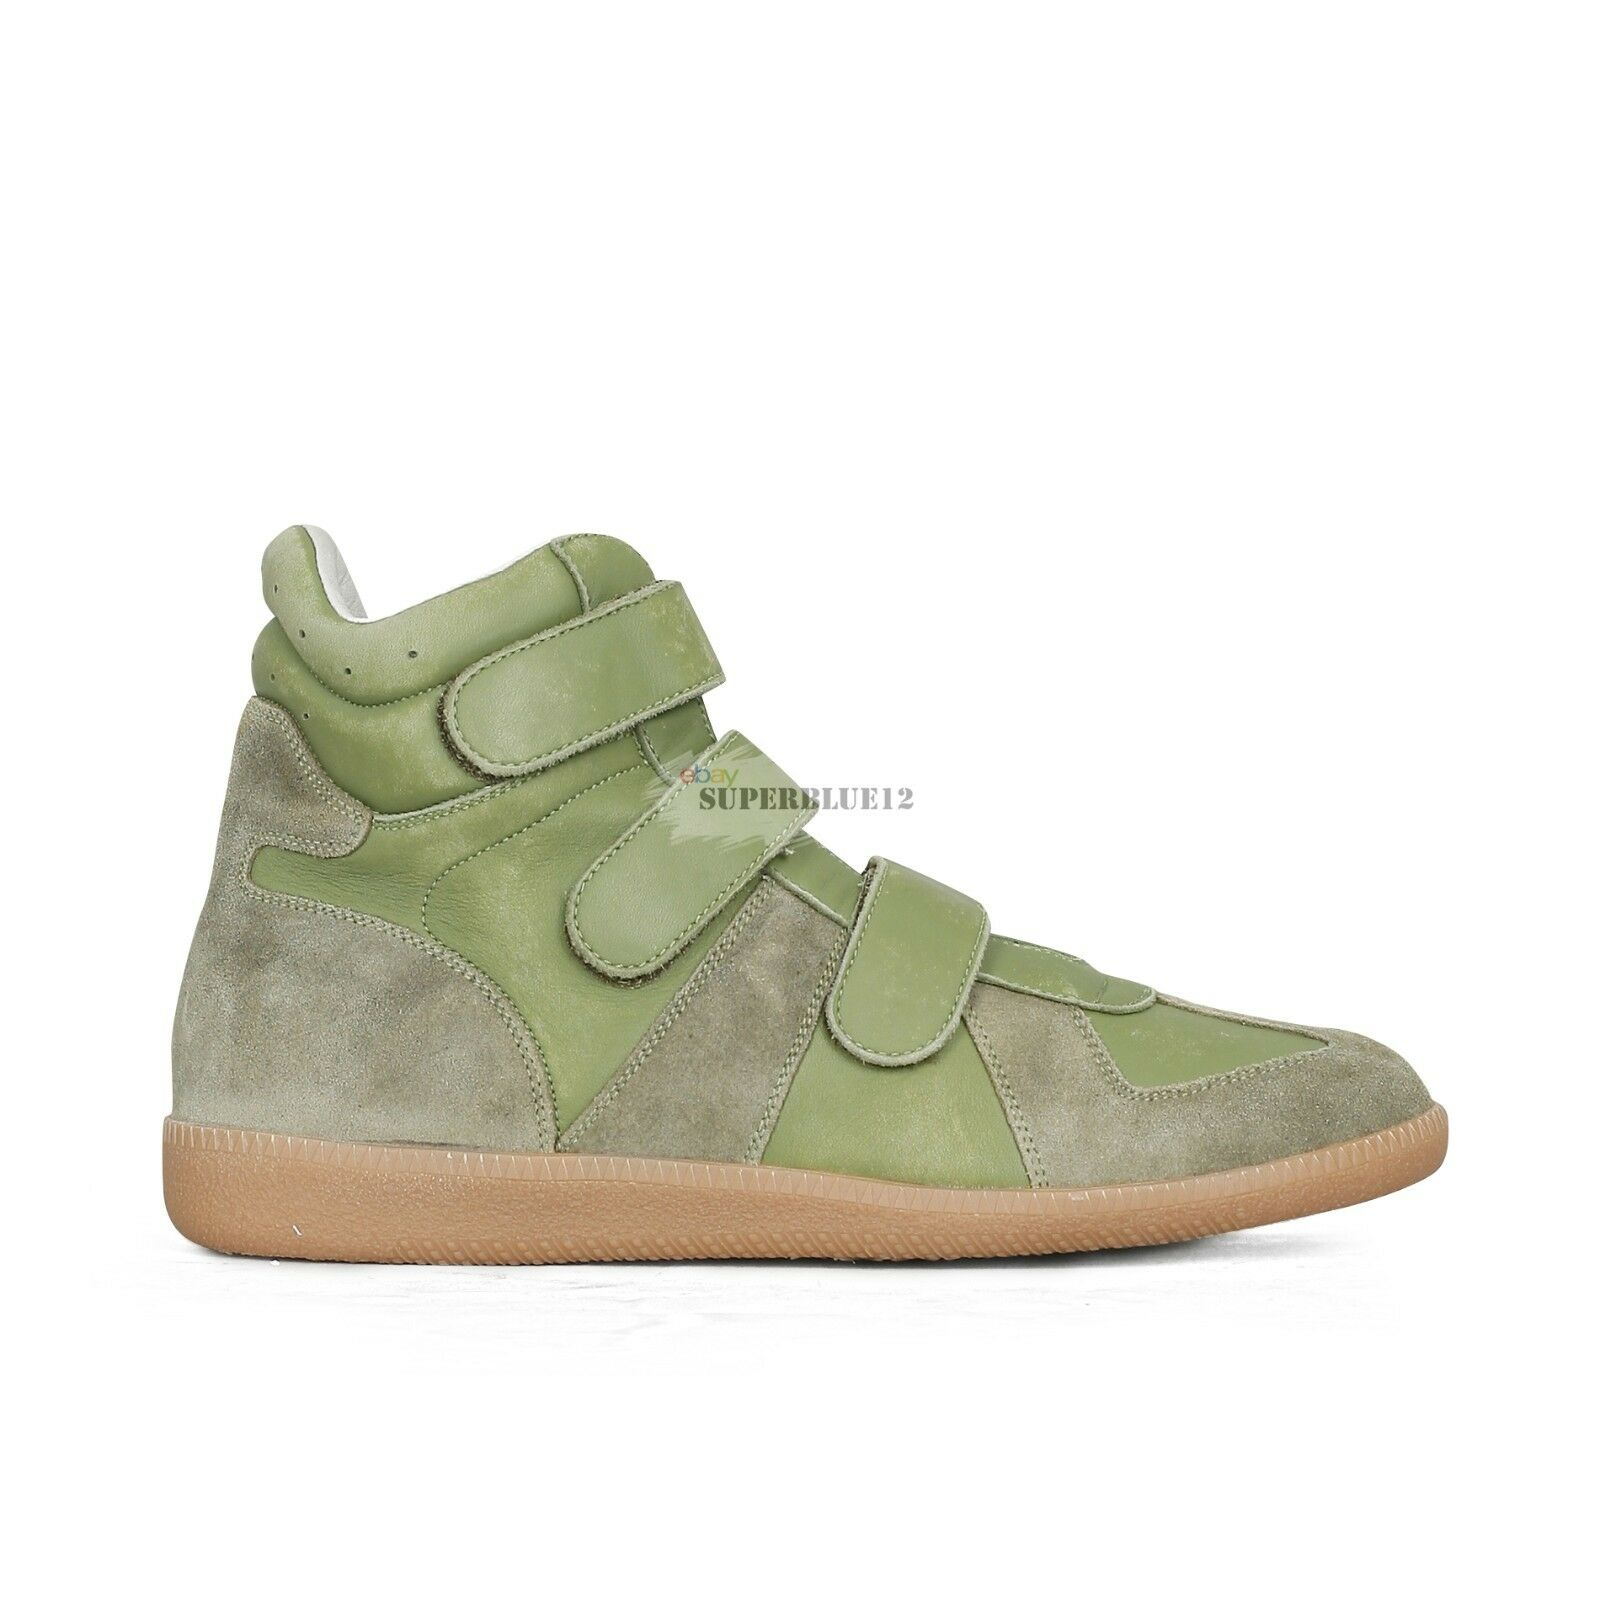 MAISON MARTIN MARGIELA GERMAN ARMY TRAINERS HIGH GREEN